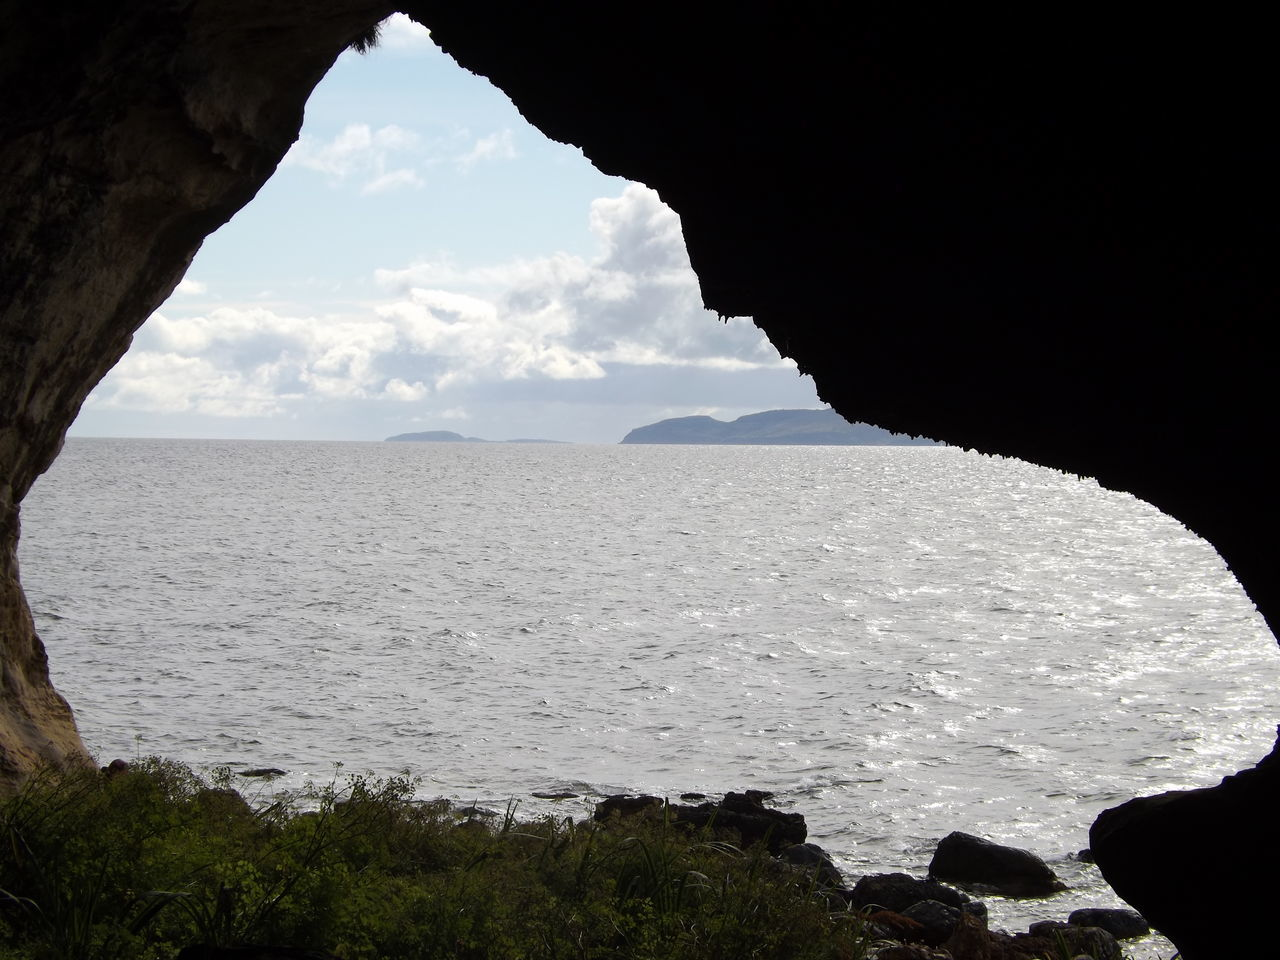 Beauty In Nature Cave Day Frame Isle Of Arran  King's Cave Landscape Nature No People Outdoors Rock - Object Scotland Sea Sea And Sky View Waves